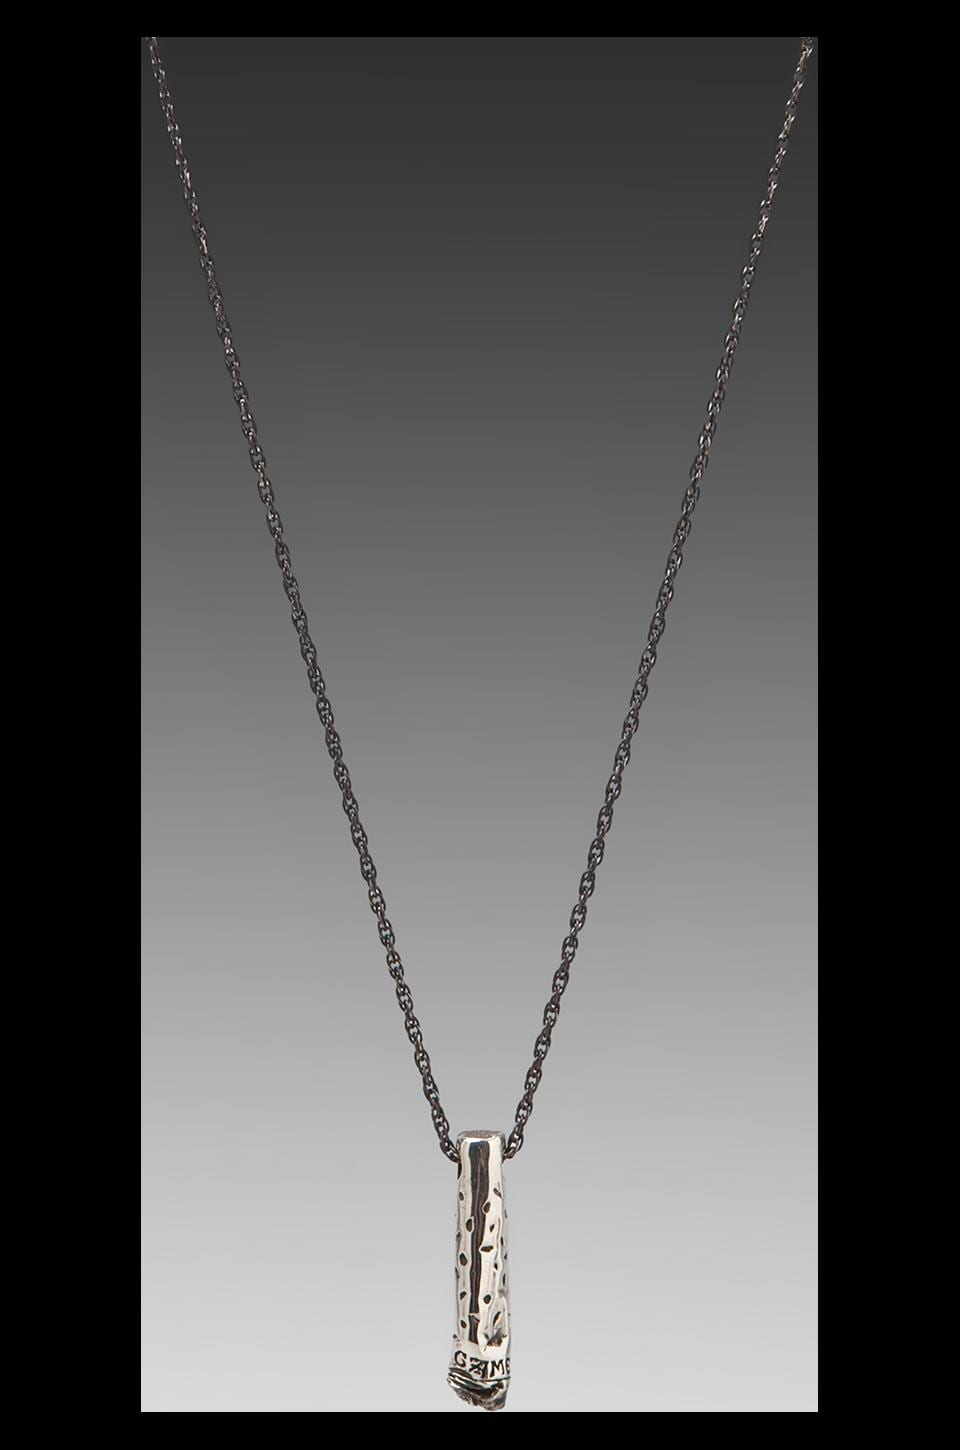 Cast of Vices Camel Necklace in Silver